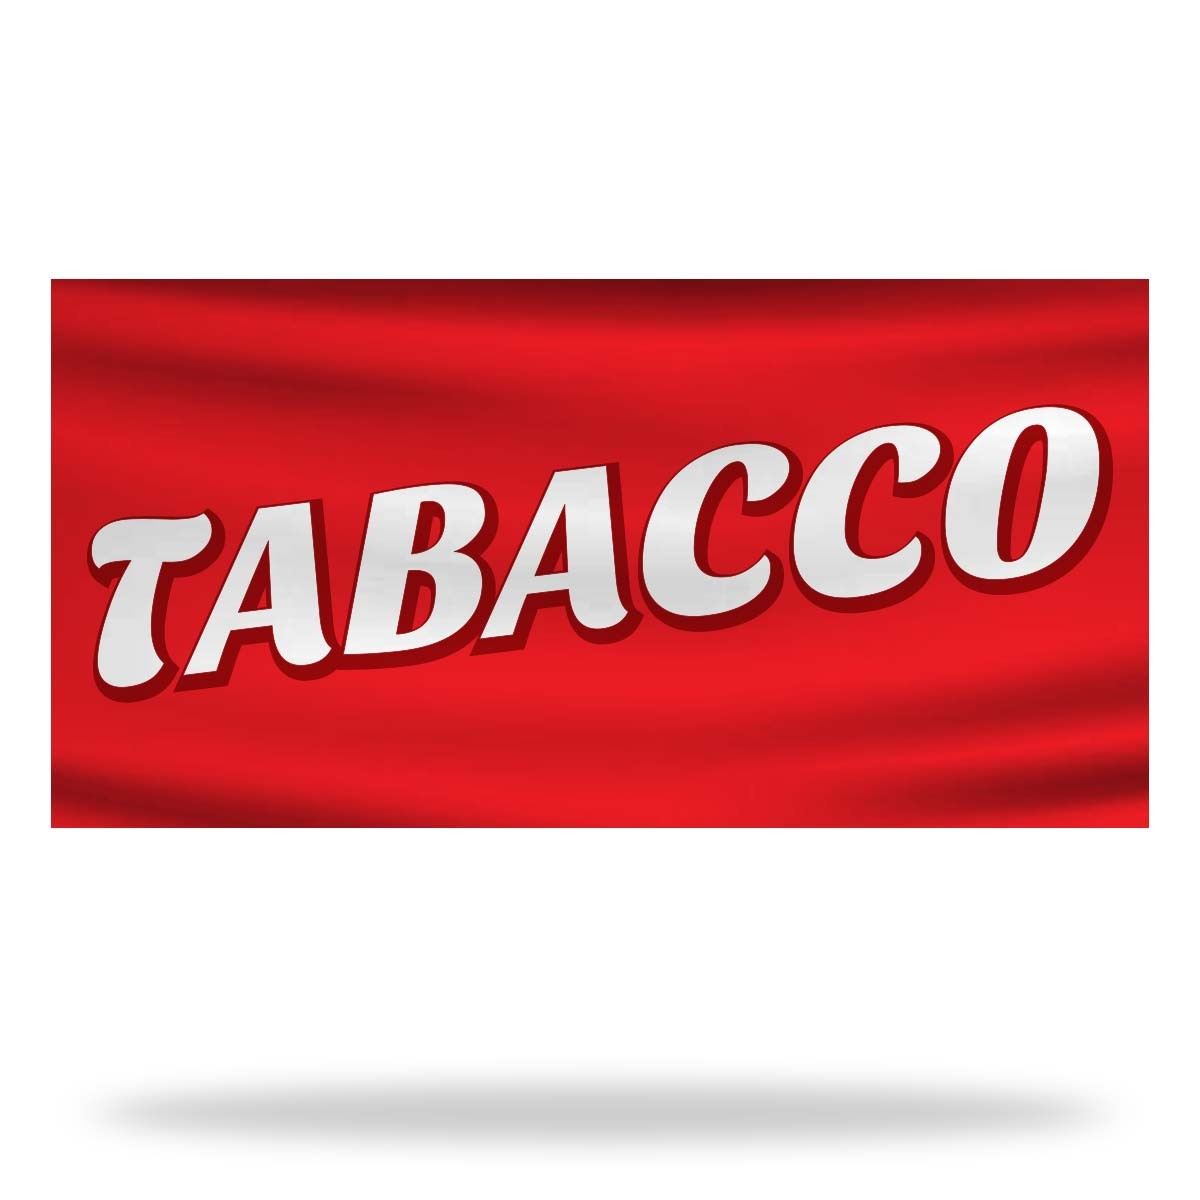 Tobacco Flags & Banners Design 02